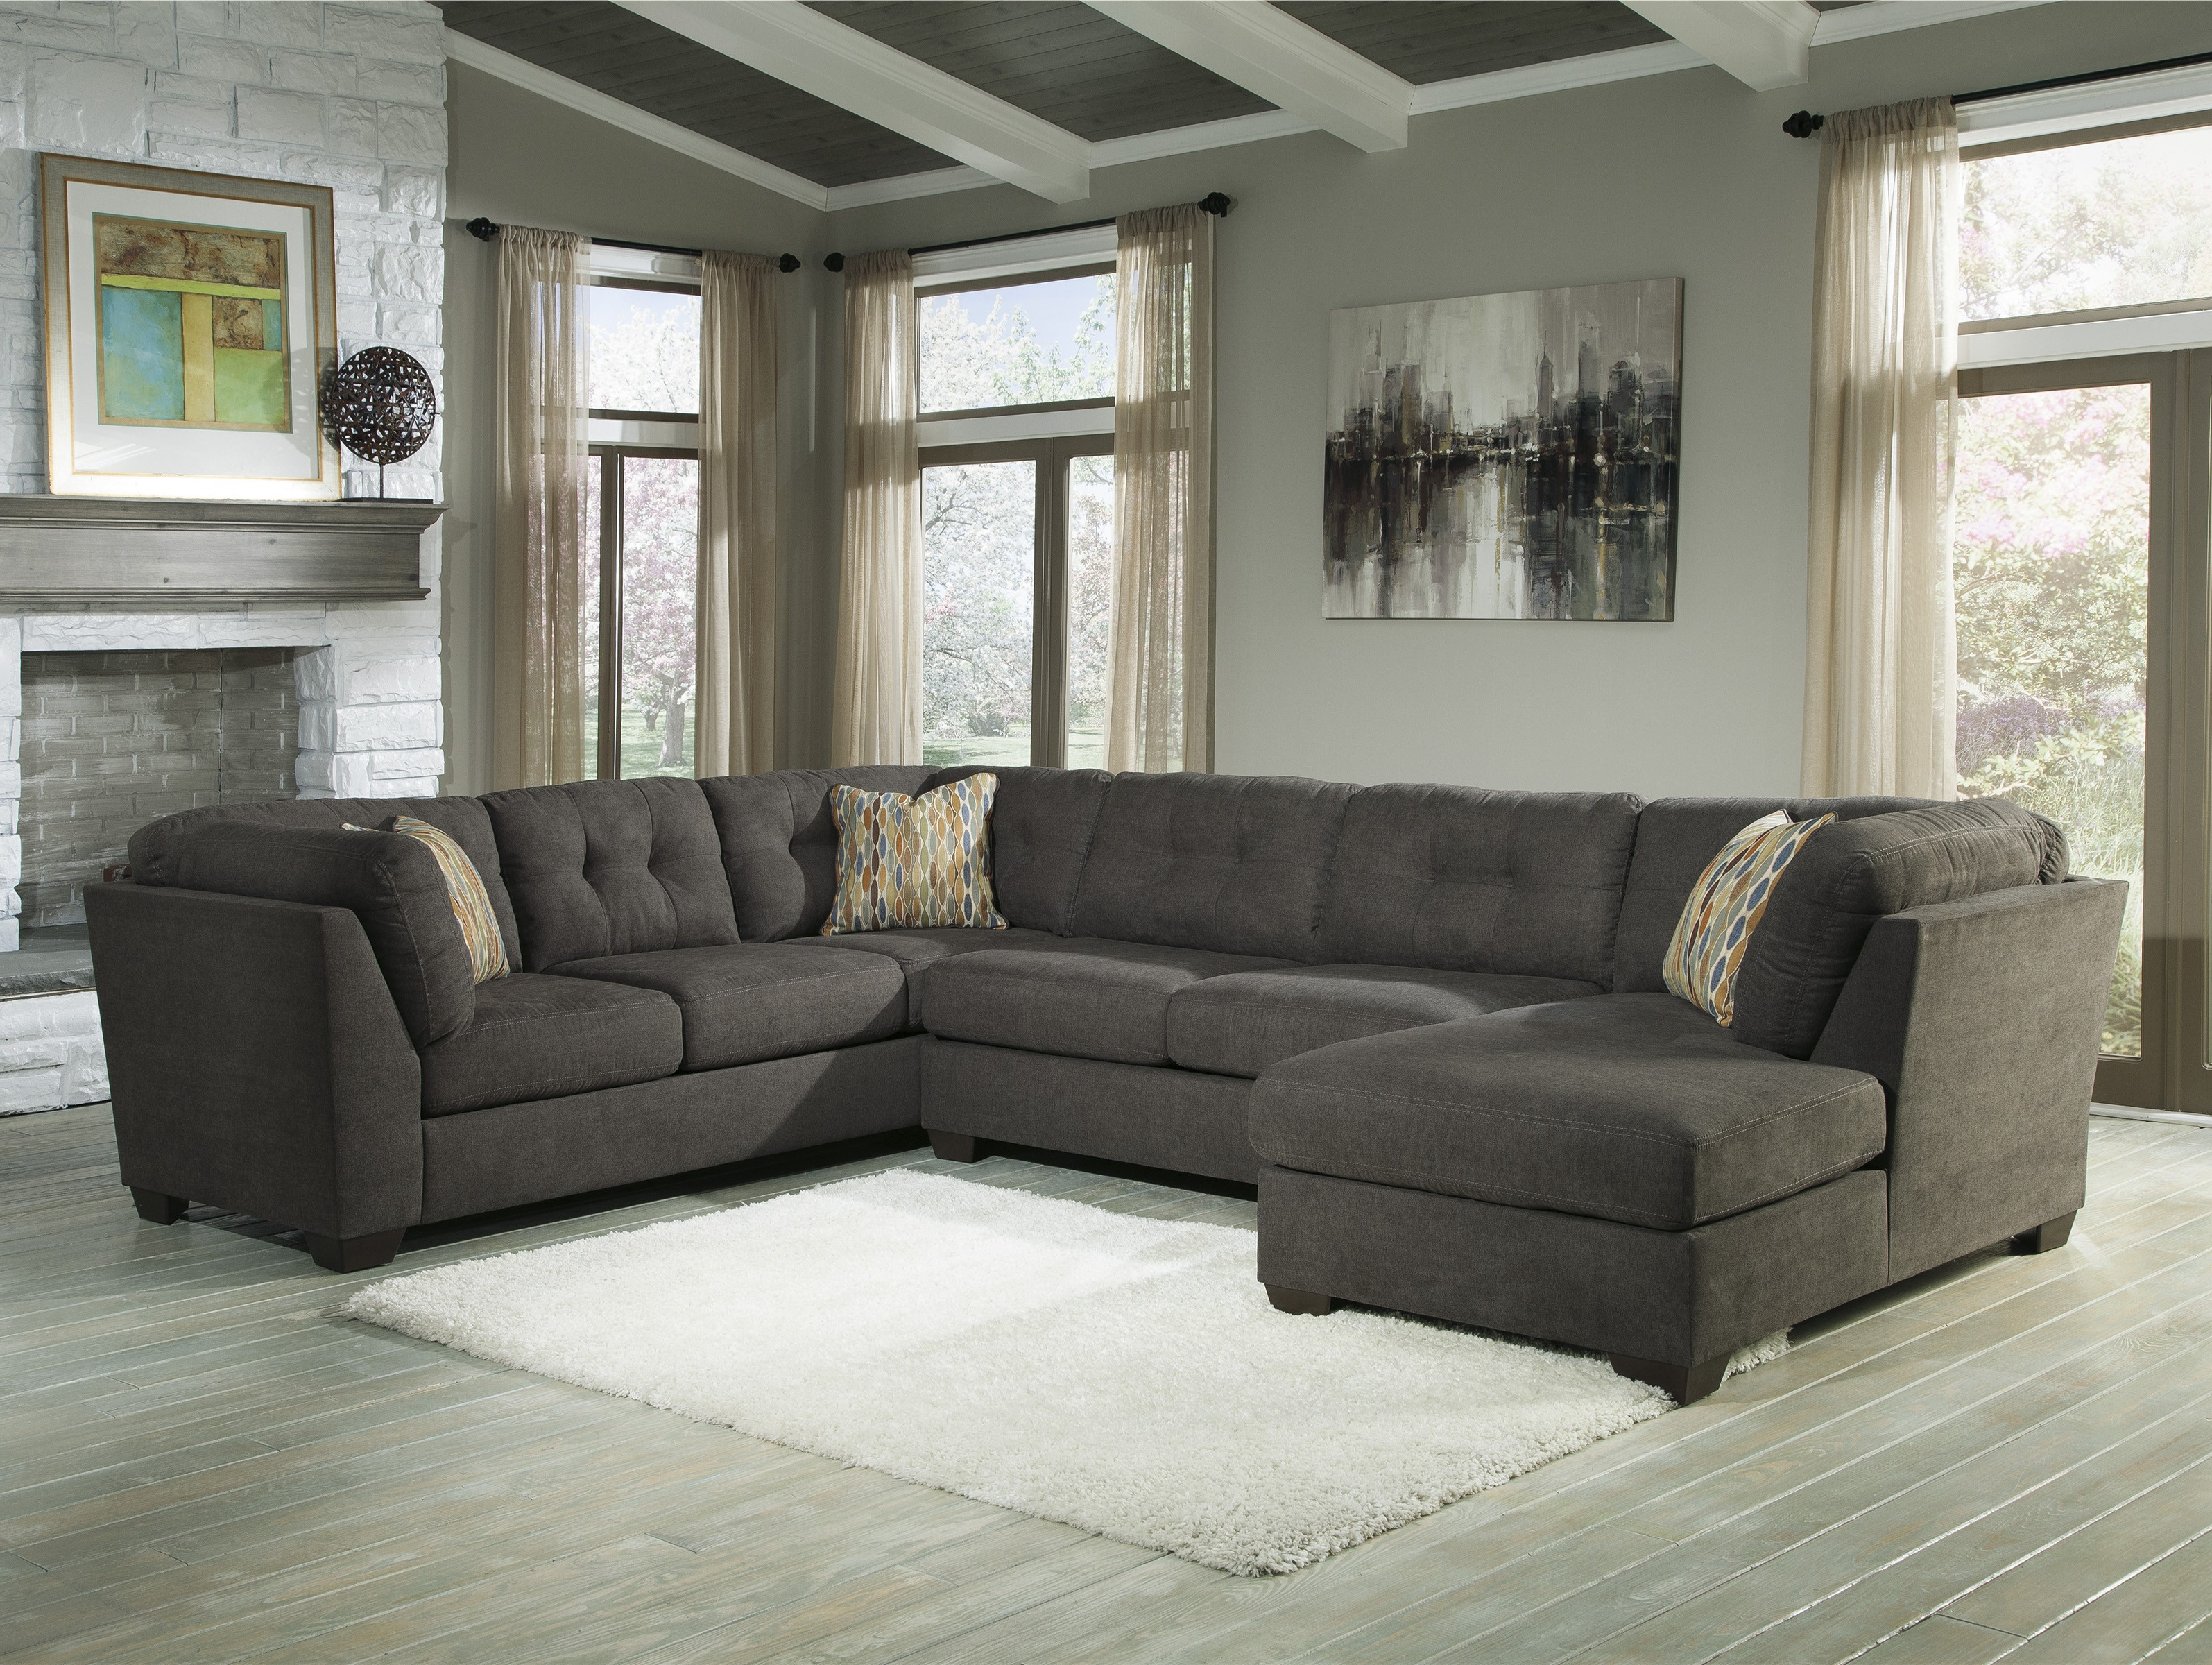 Avery 2 Piece Sectionals With Raf Armless Chaise Intended For 2018 Armless Sectional Sofa With Chaise (View 9 of 20)